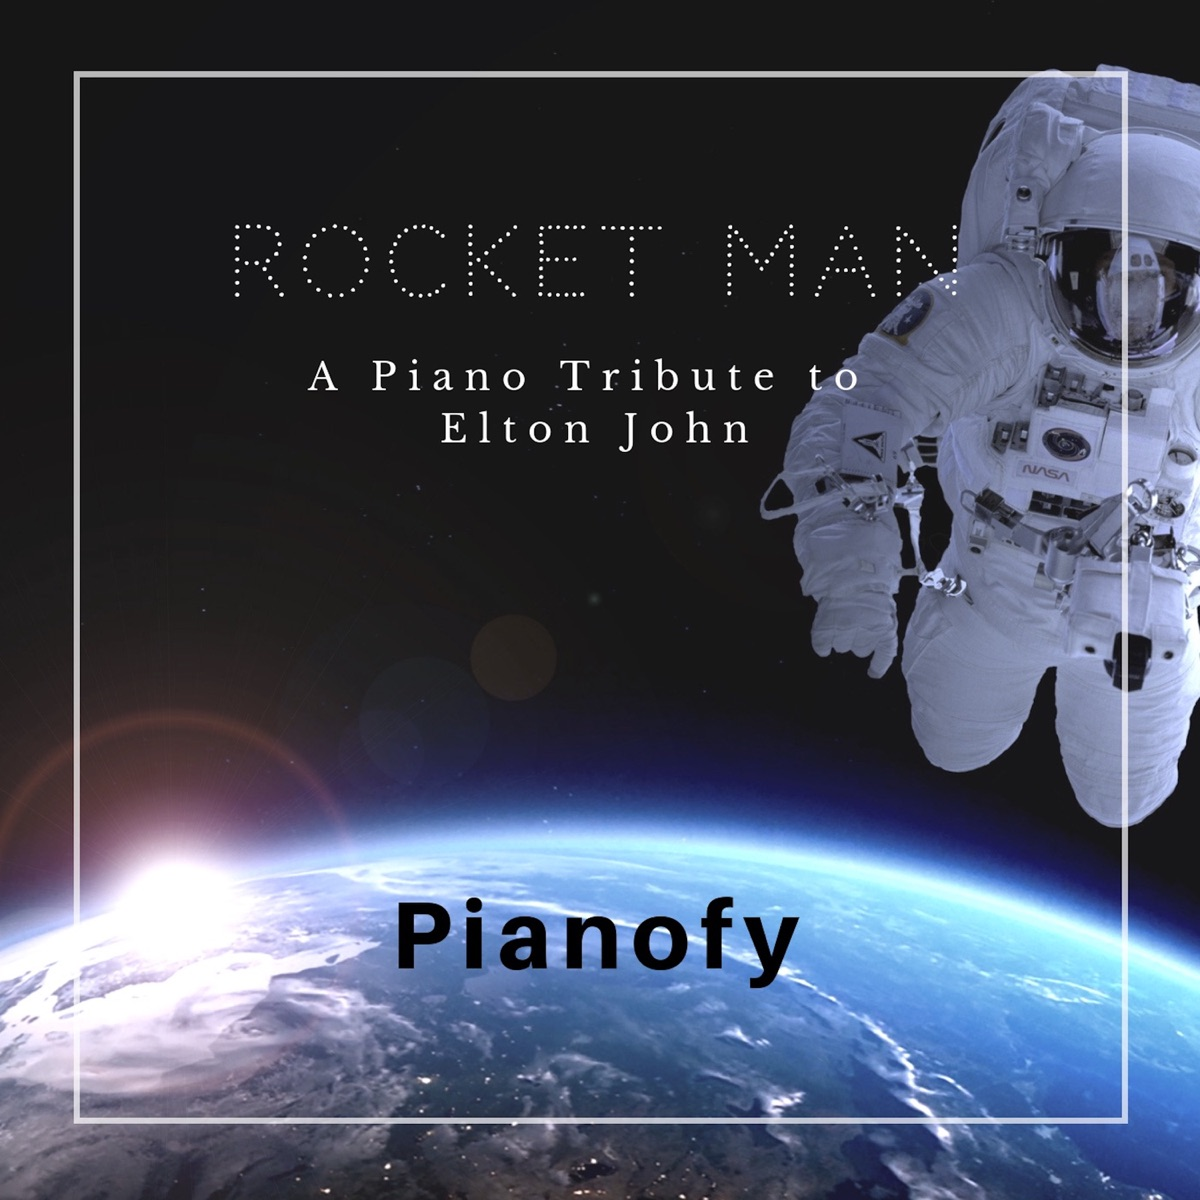 Rocket Man A Piano Tribute to Elton John Pianofy CD cover